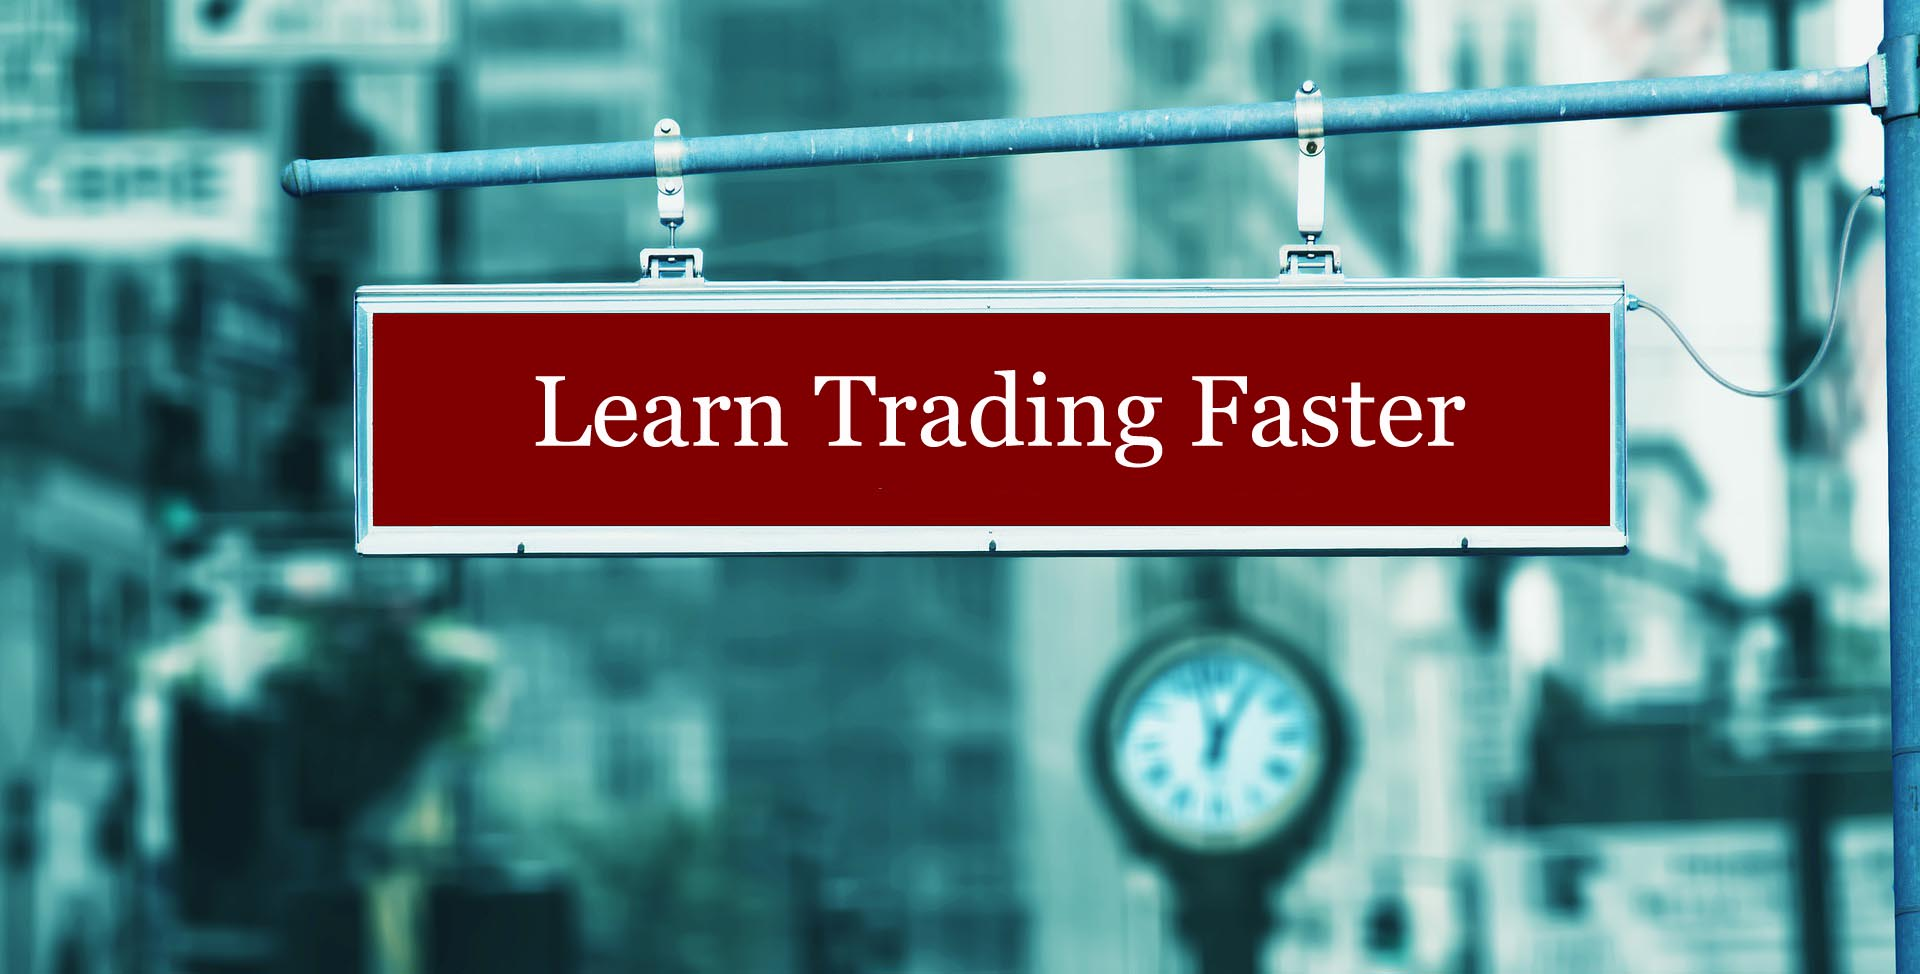 How To Learn Forex Trading Faster The Right Way Offbeat